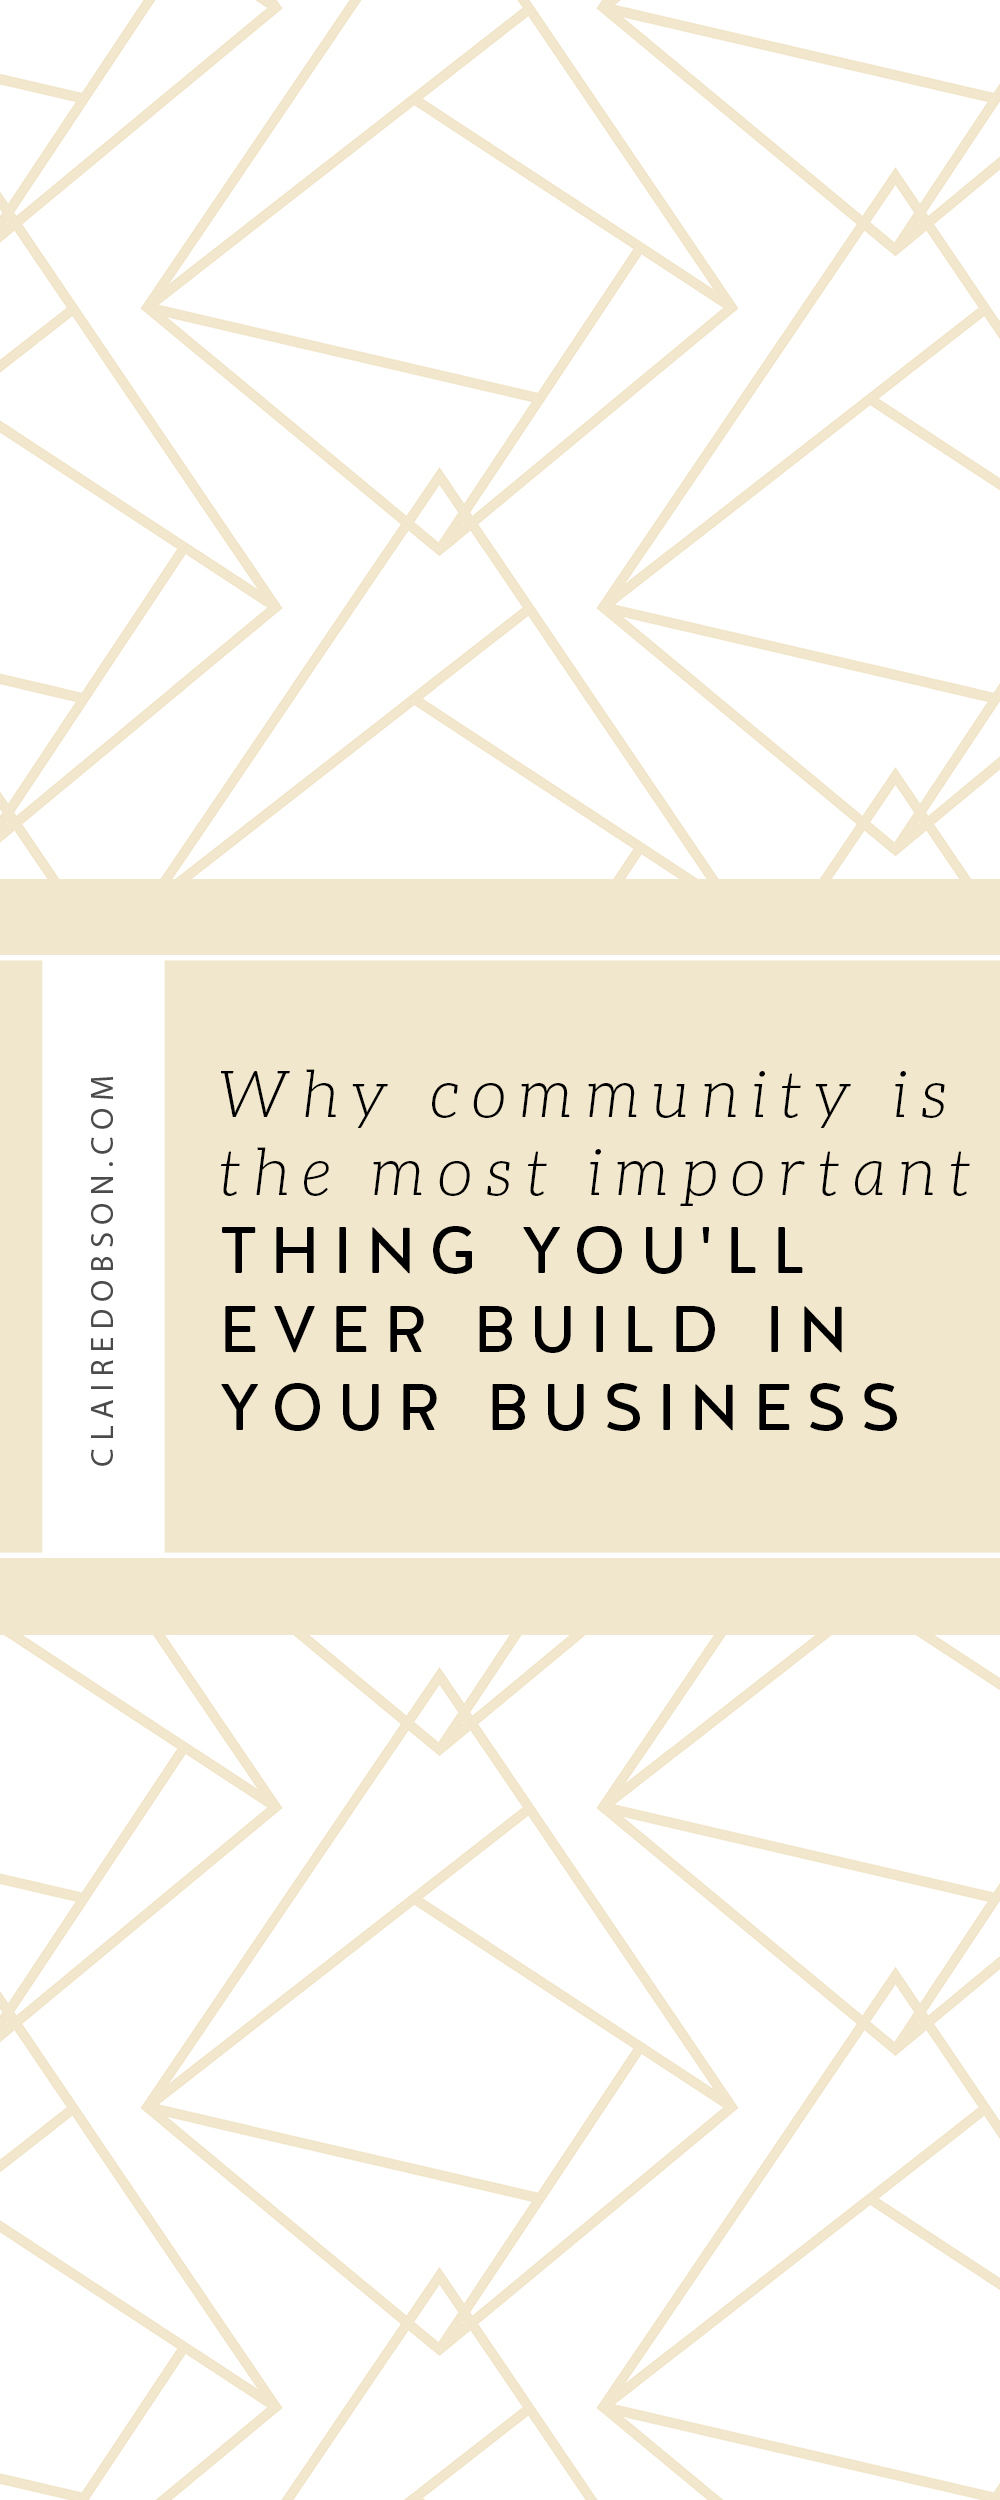 Building your unique community will set you apart from your competitors. Check out these tips on how to build a community or support for you and your business. #entrepreneurship #community